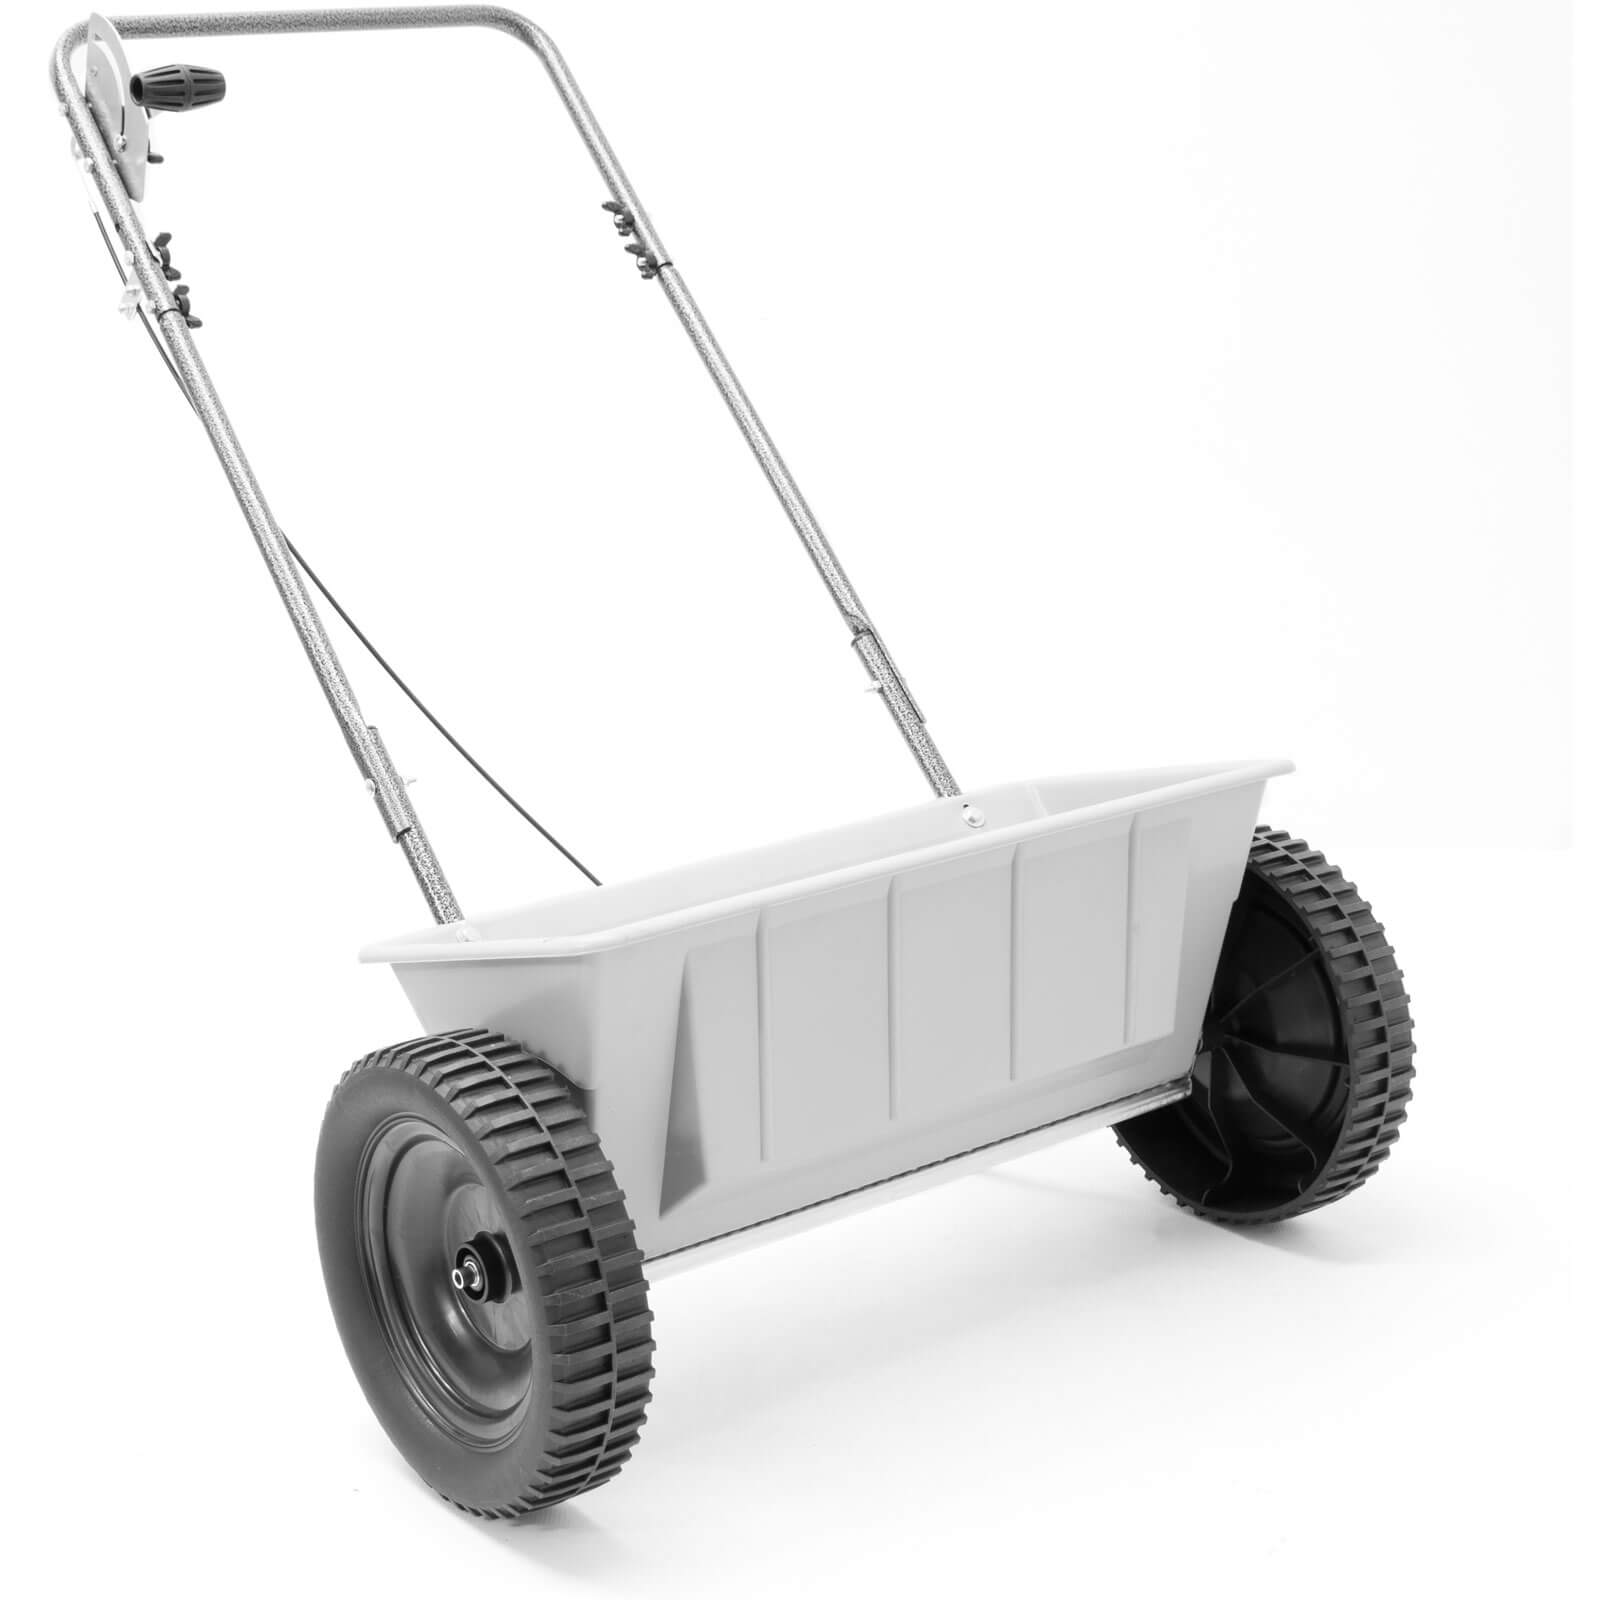 Handy Push Grass & Feed Drop Spreader 560mm Spread Width 27kg Capacity